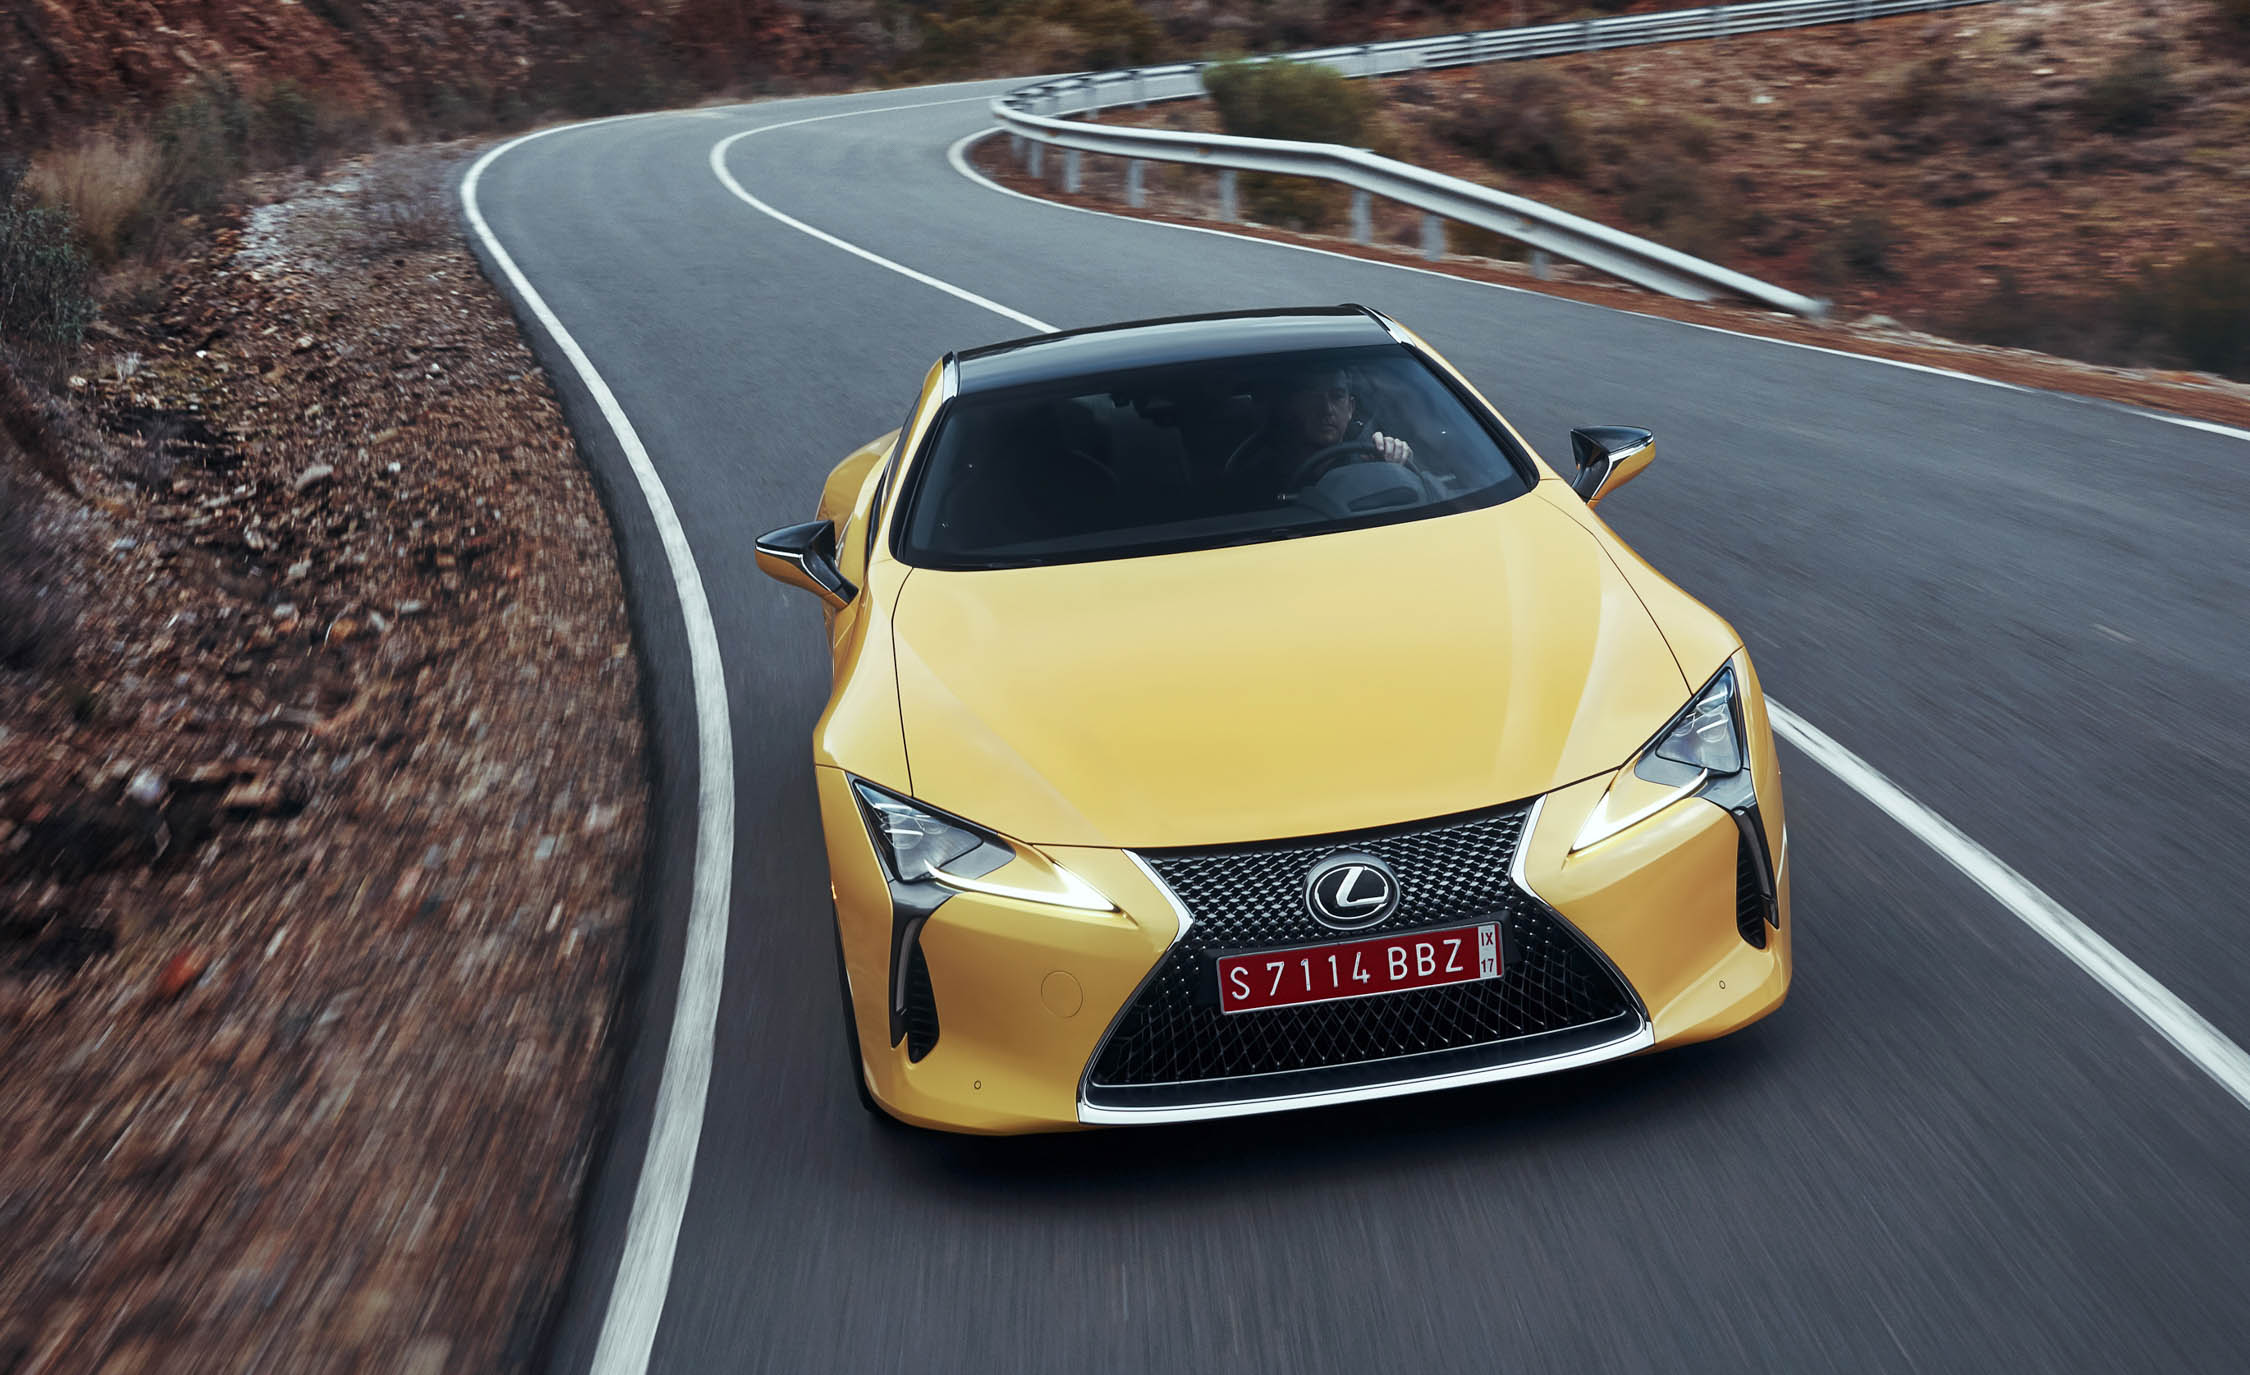 2018 Lexus Lc500 Yellow Test Drive Front View (View 73 of 84)